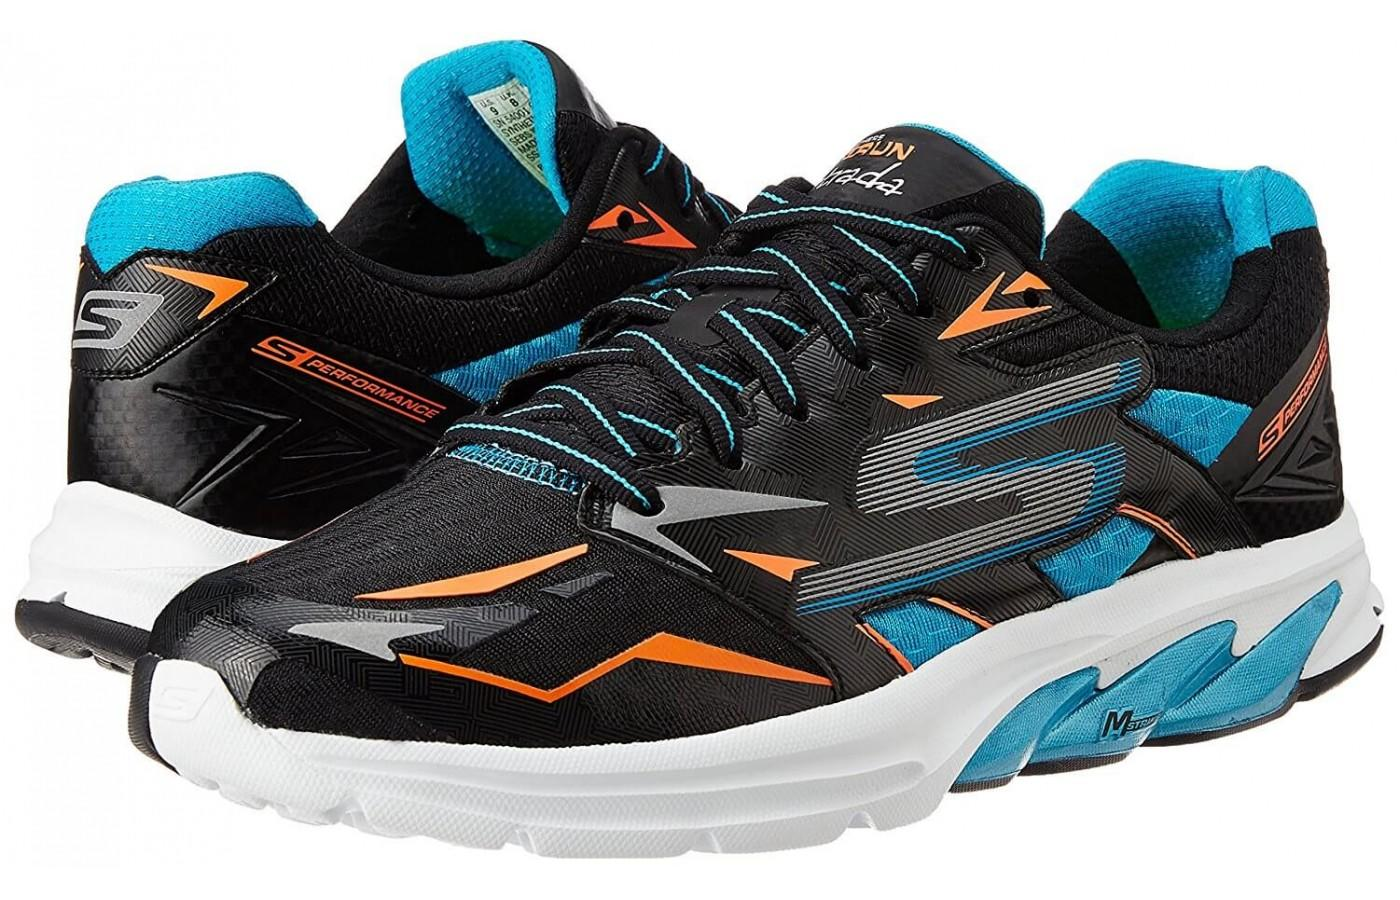 a pair of Skechers GOrun Strada shoes